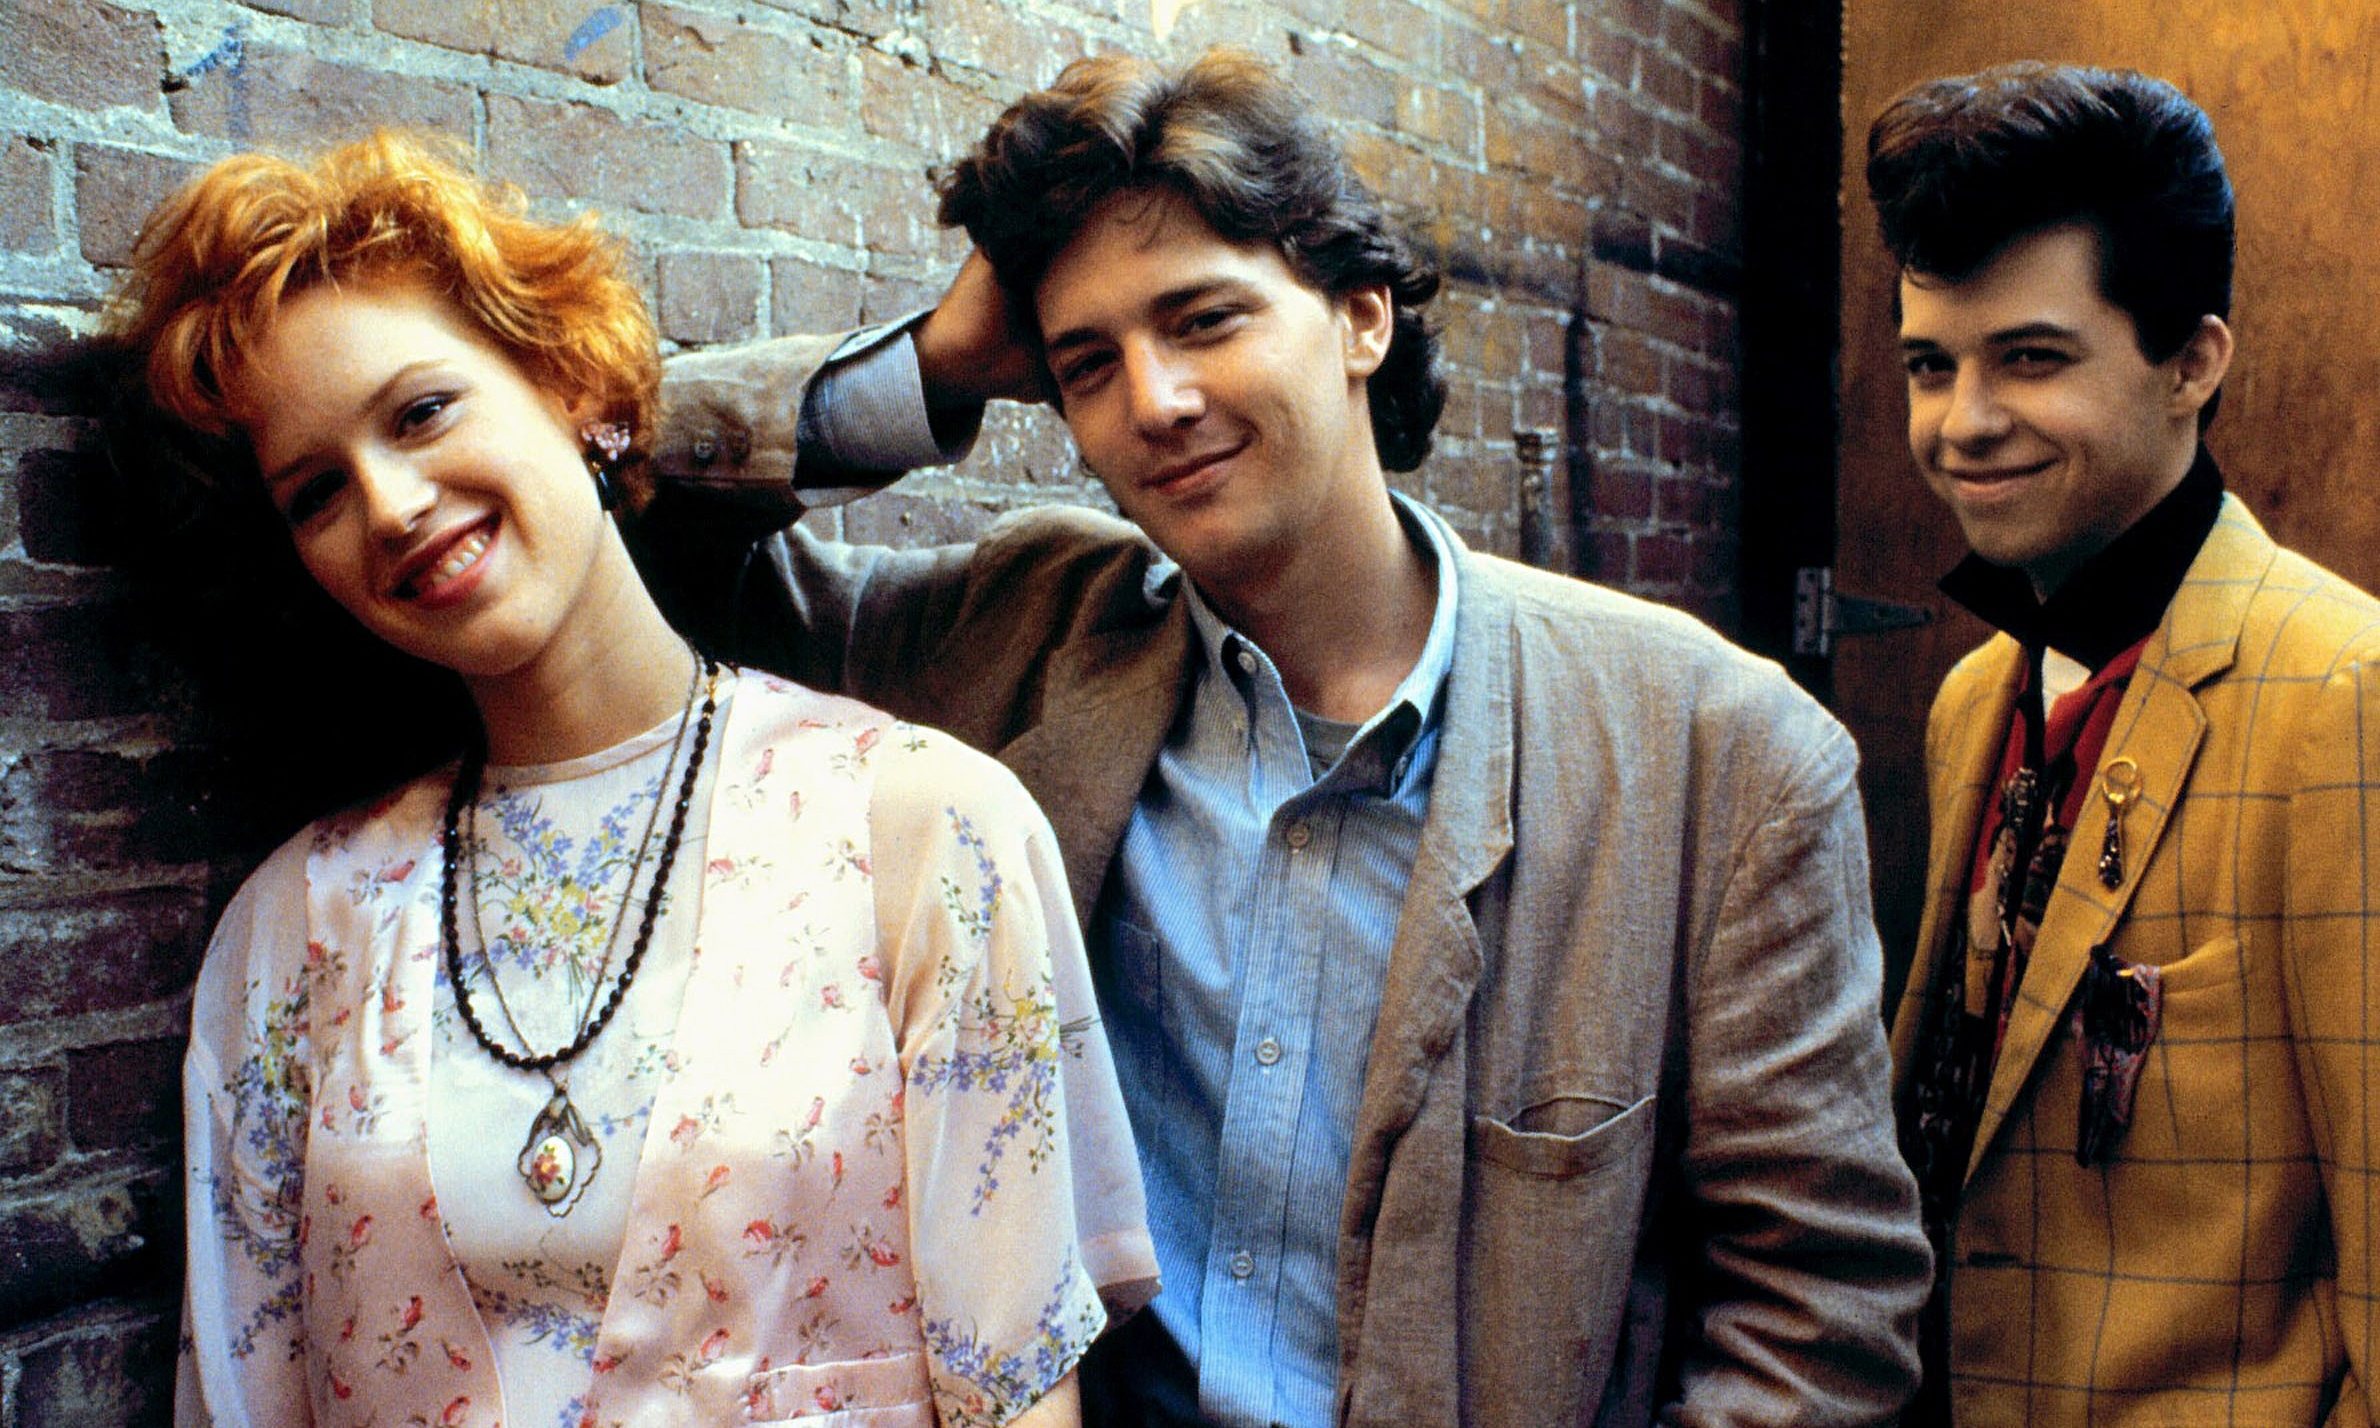 Pretty in Pink' at 30: The Best and Worst Films of John Hughes - Variety